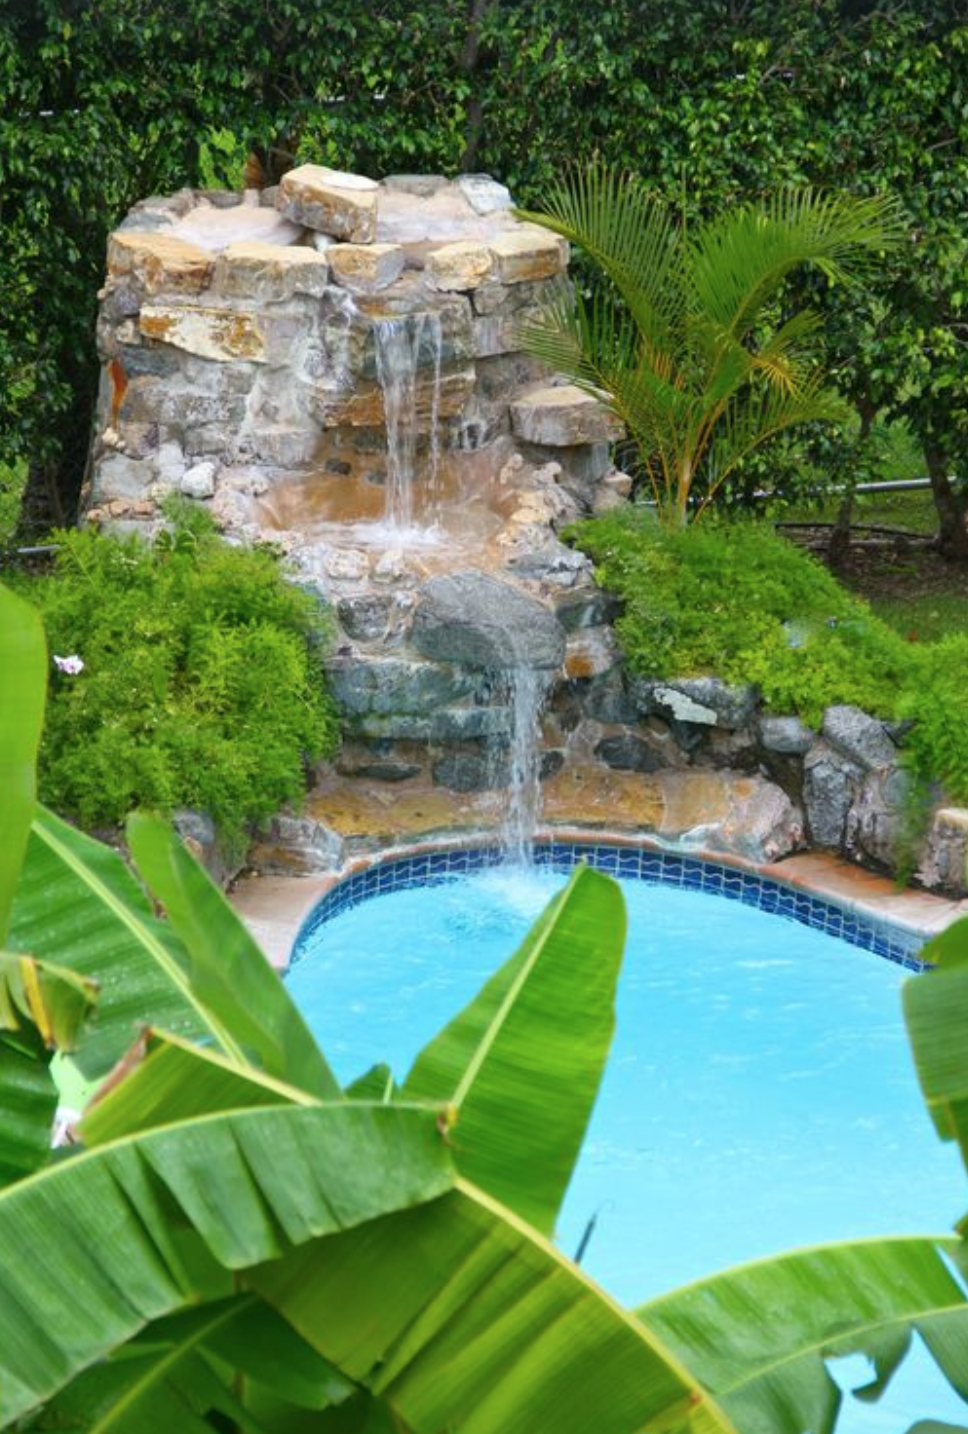 TROPICAL TRANQUILITY - a luxurious pool experience with cascading waterfall and perfect privacy